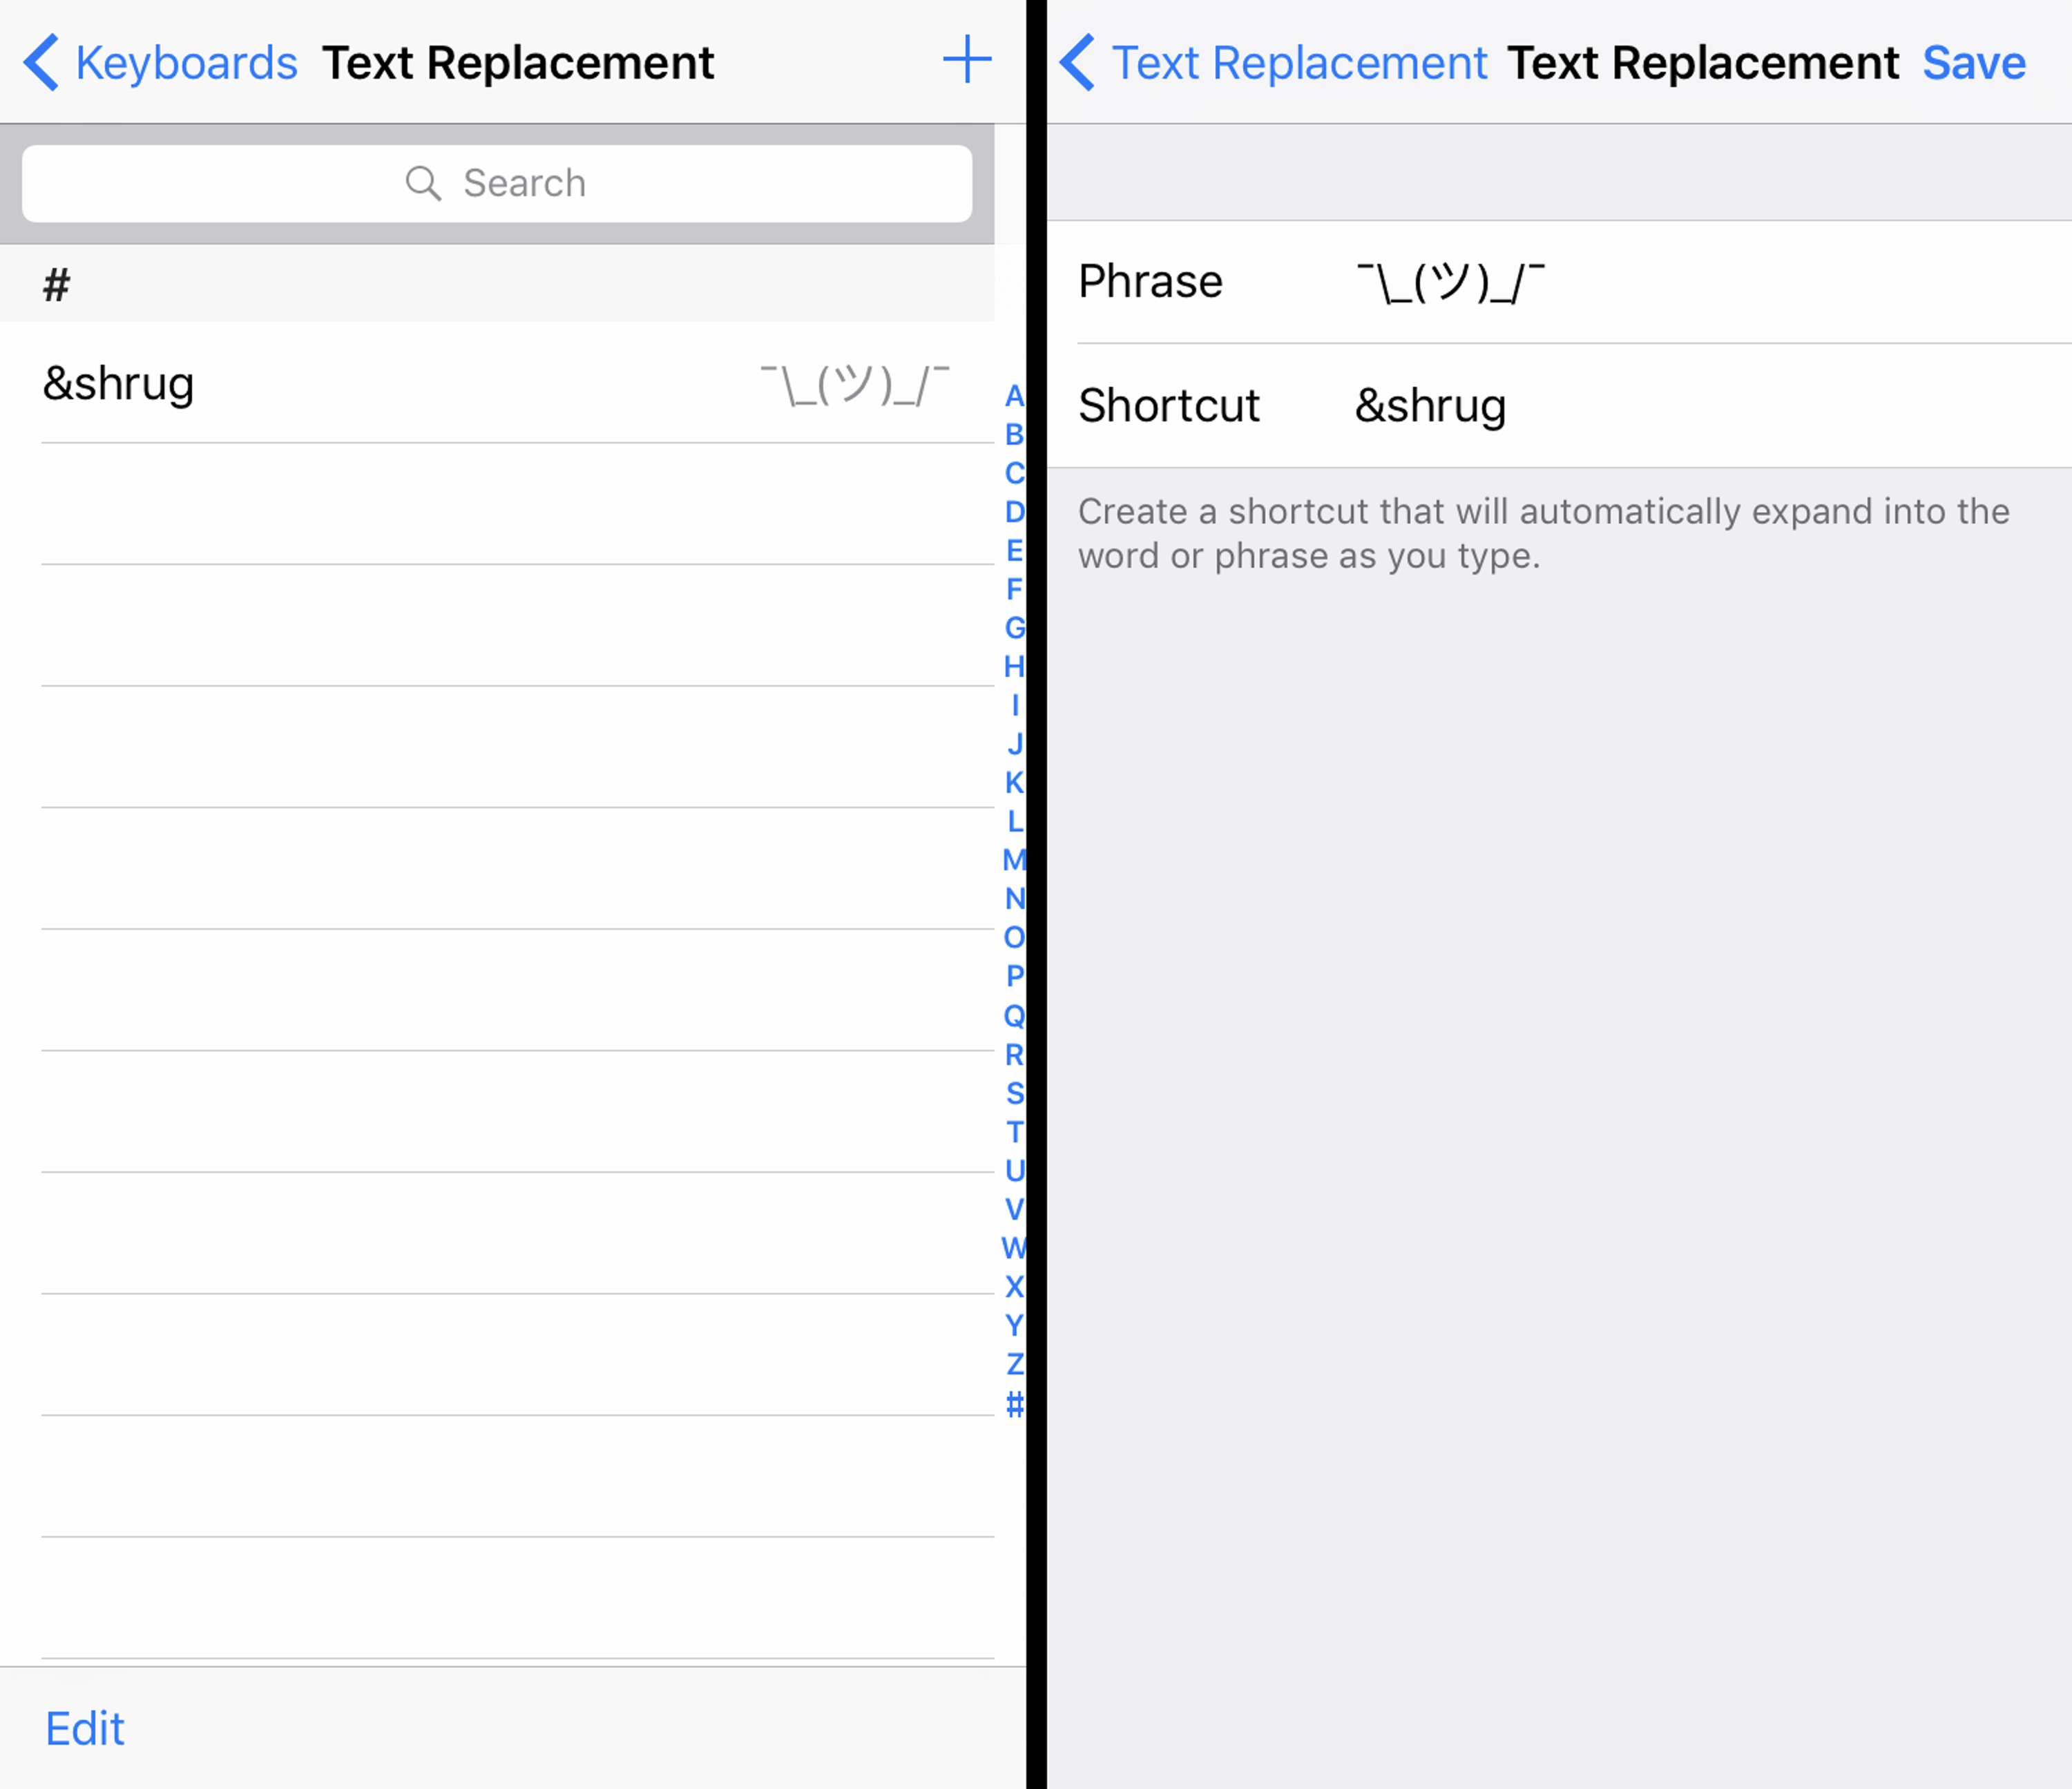 Screenshots explain how to set up text replacement with iOS 10.